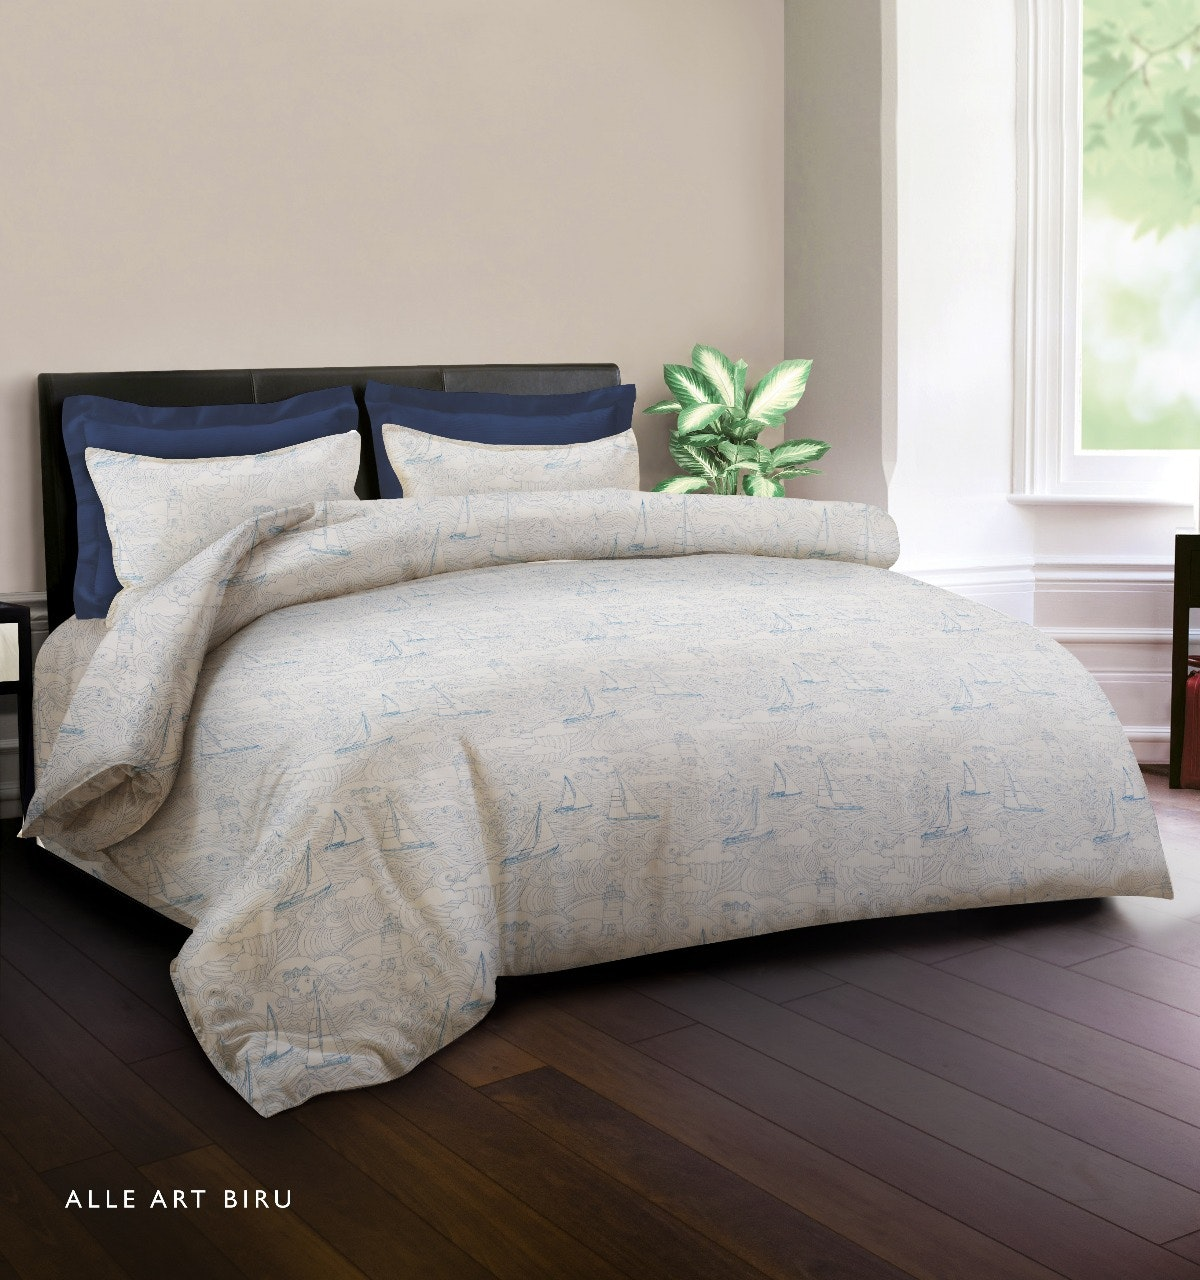 King Rabbit Set Bed Cover & Sprei Sarung Bantal King Motif Alle Art -Biru Uk 180x200x40 cm